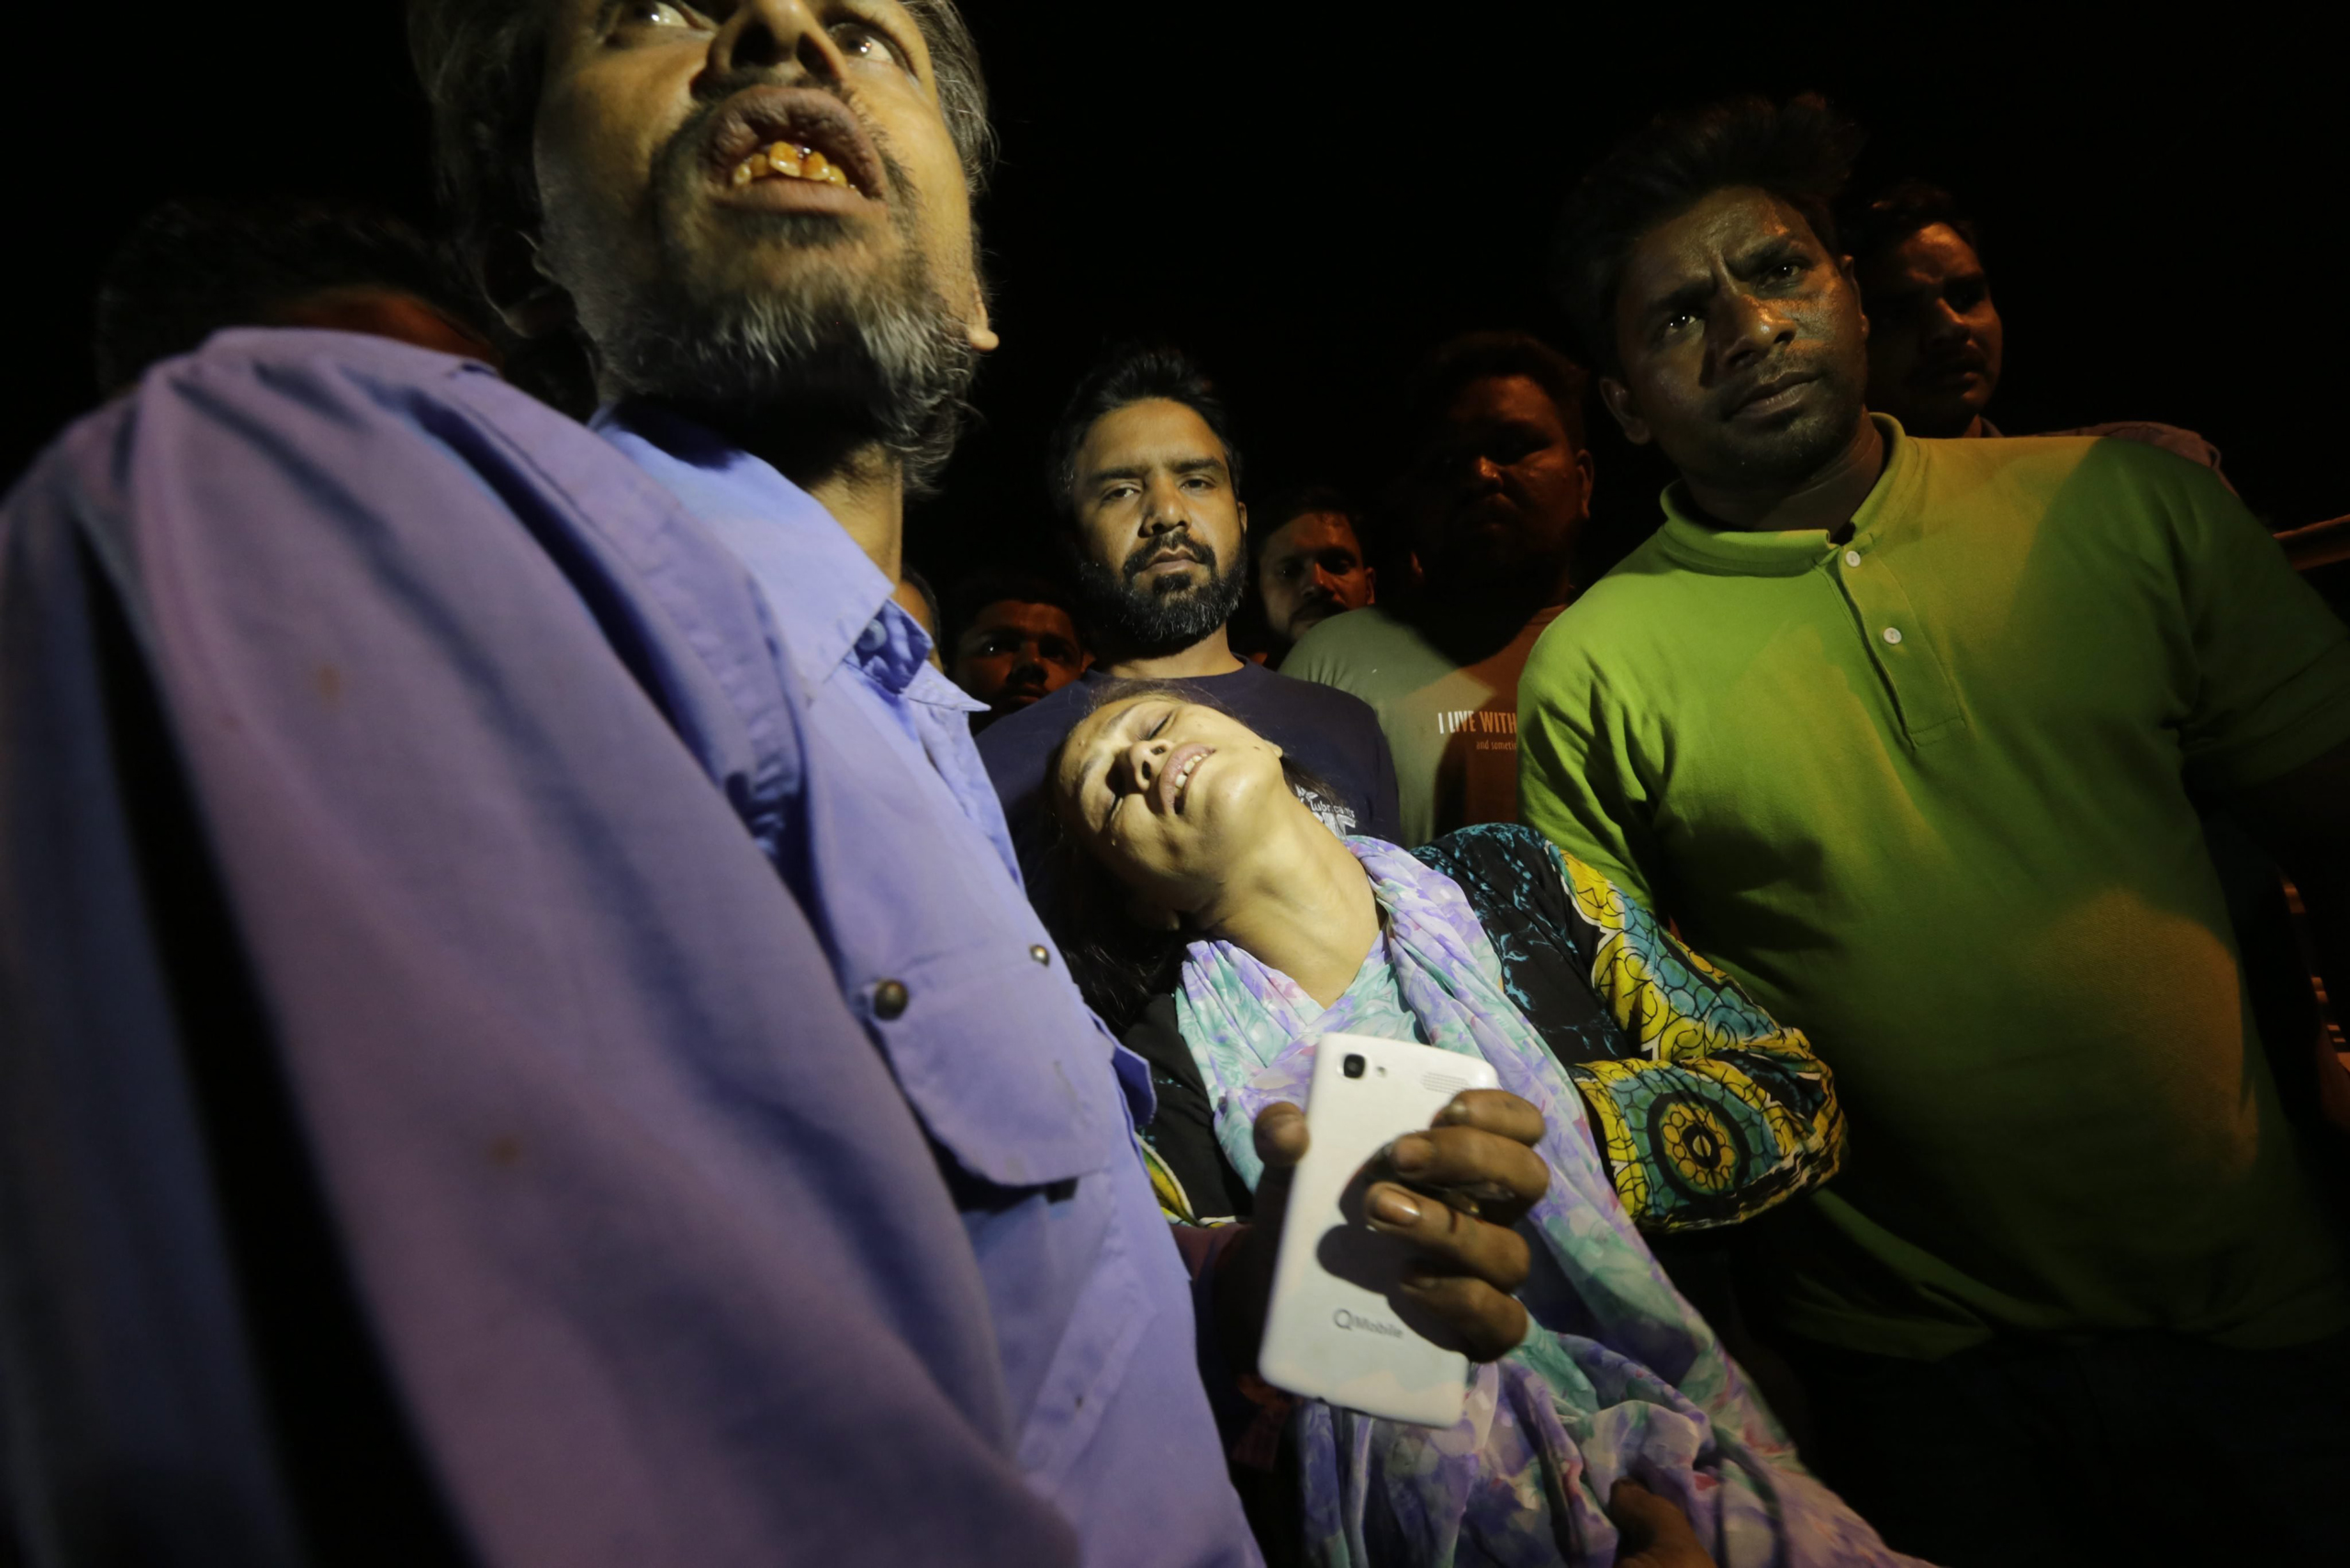 Relatives of the victims of a suicide bomb blast cry outside a hospital in Lahore, Pakistan, on March 27, 2016.